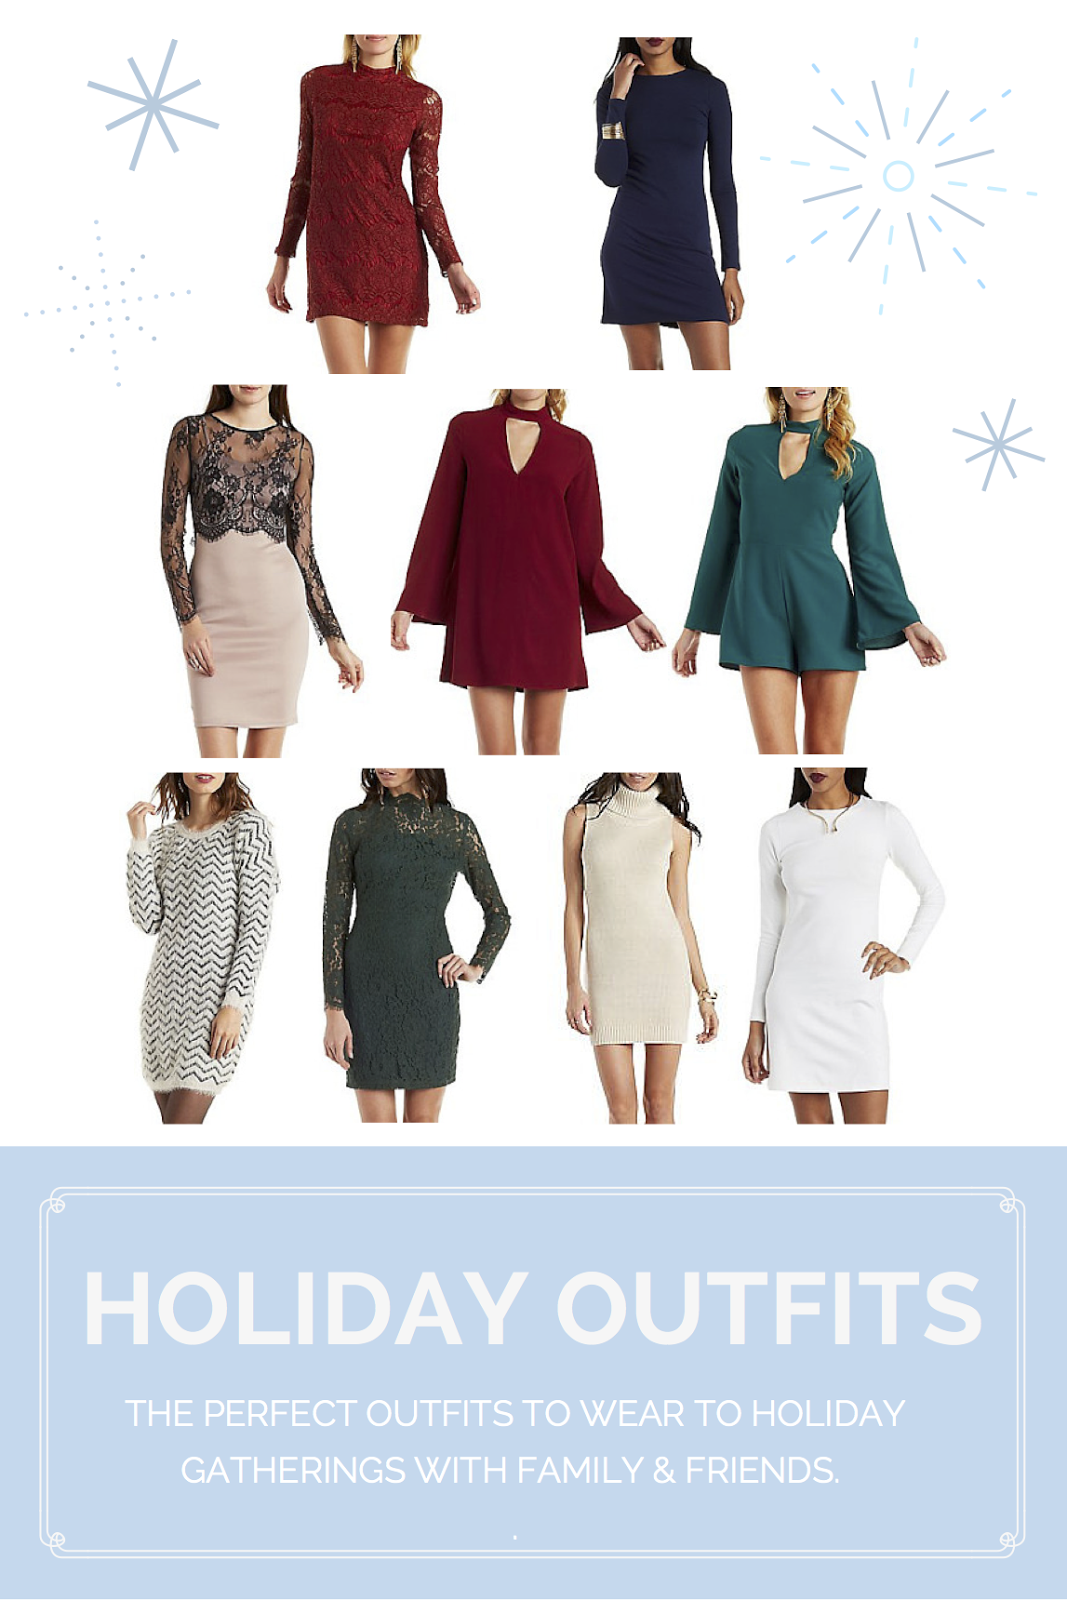 9 Holiday Outfits to Dazzle In